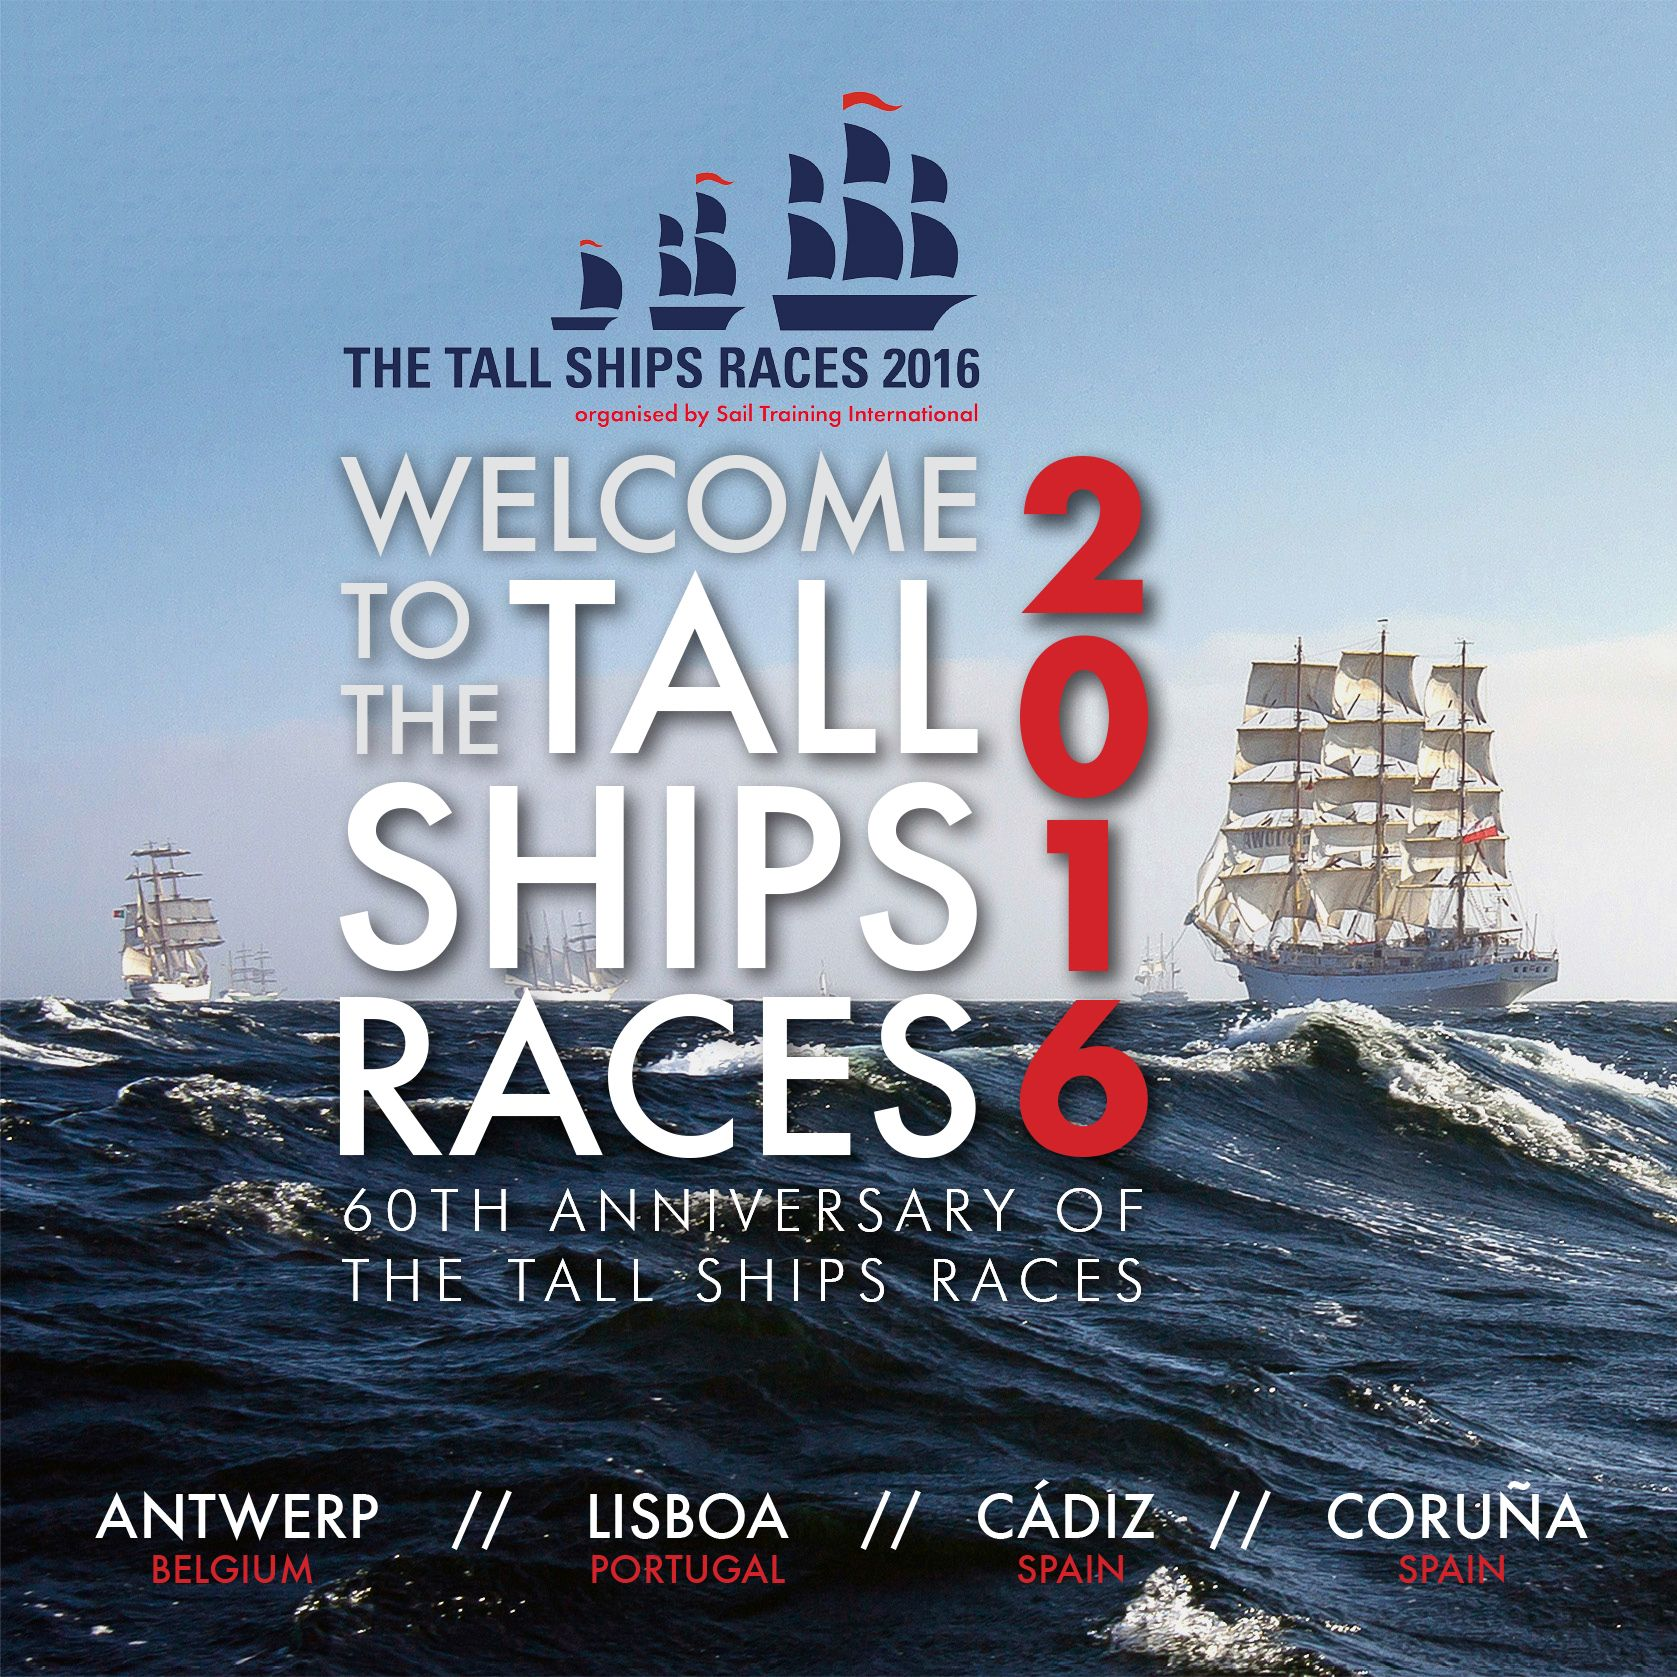 1 955 Nautical Miles 4 Host Ports 4 Cultures 1 Huge Event Country Lisboa Portugal Instagram